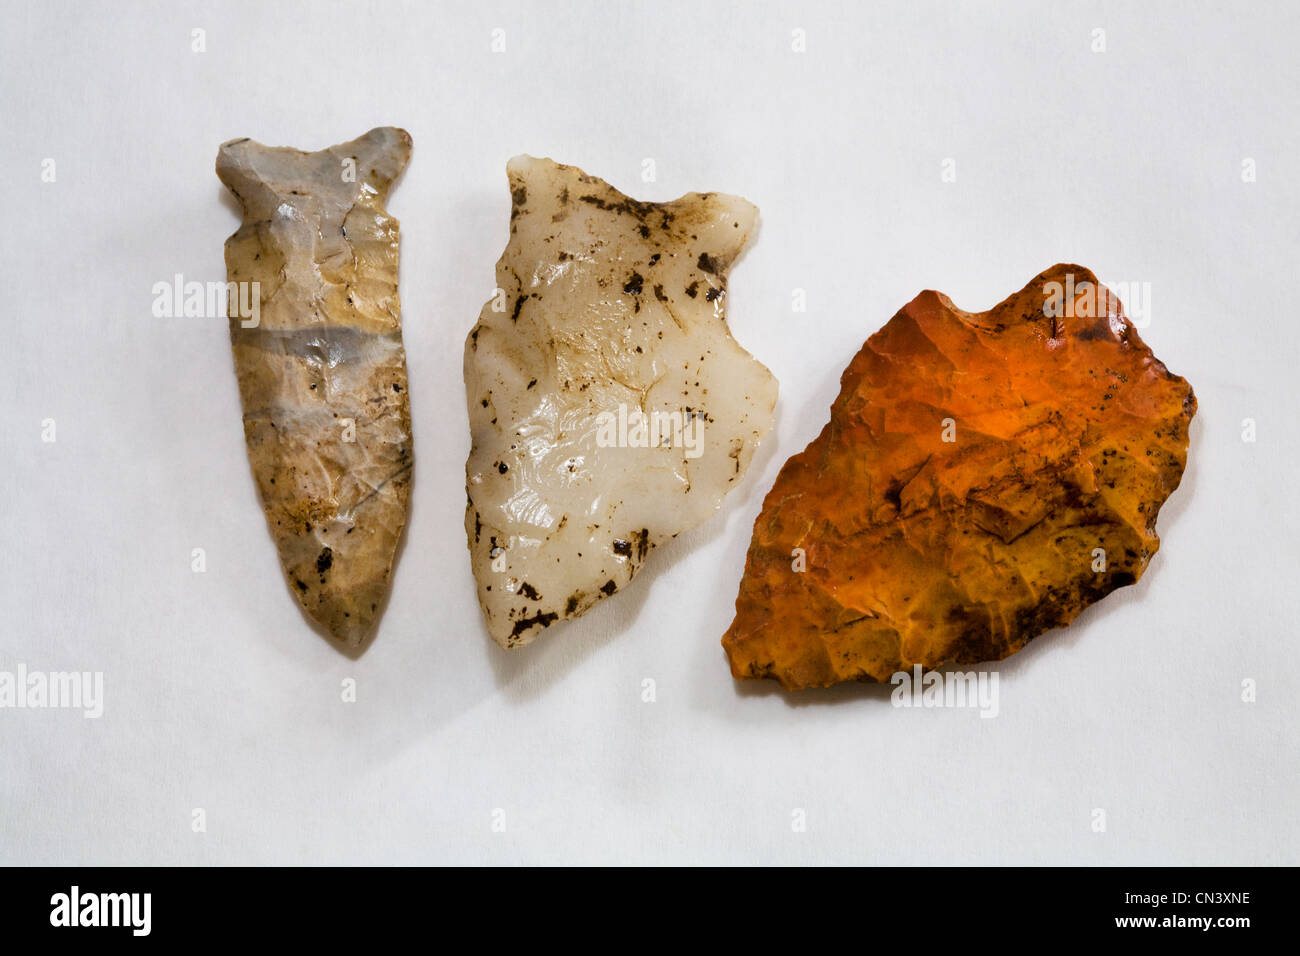 Three flint atlatl projectile points from the Desert Archaic Period in the American southwest - Stock Image